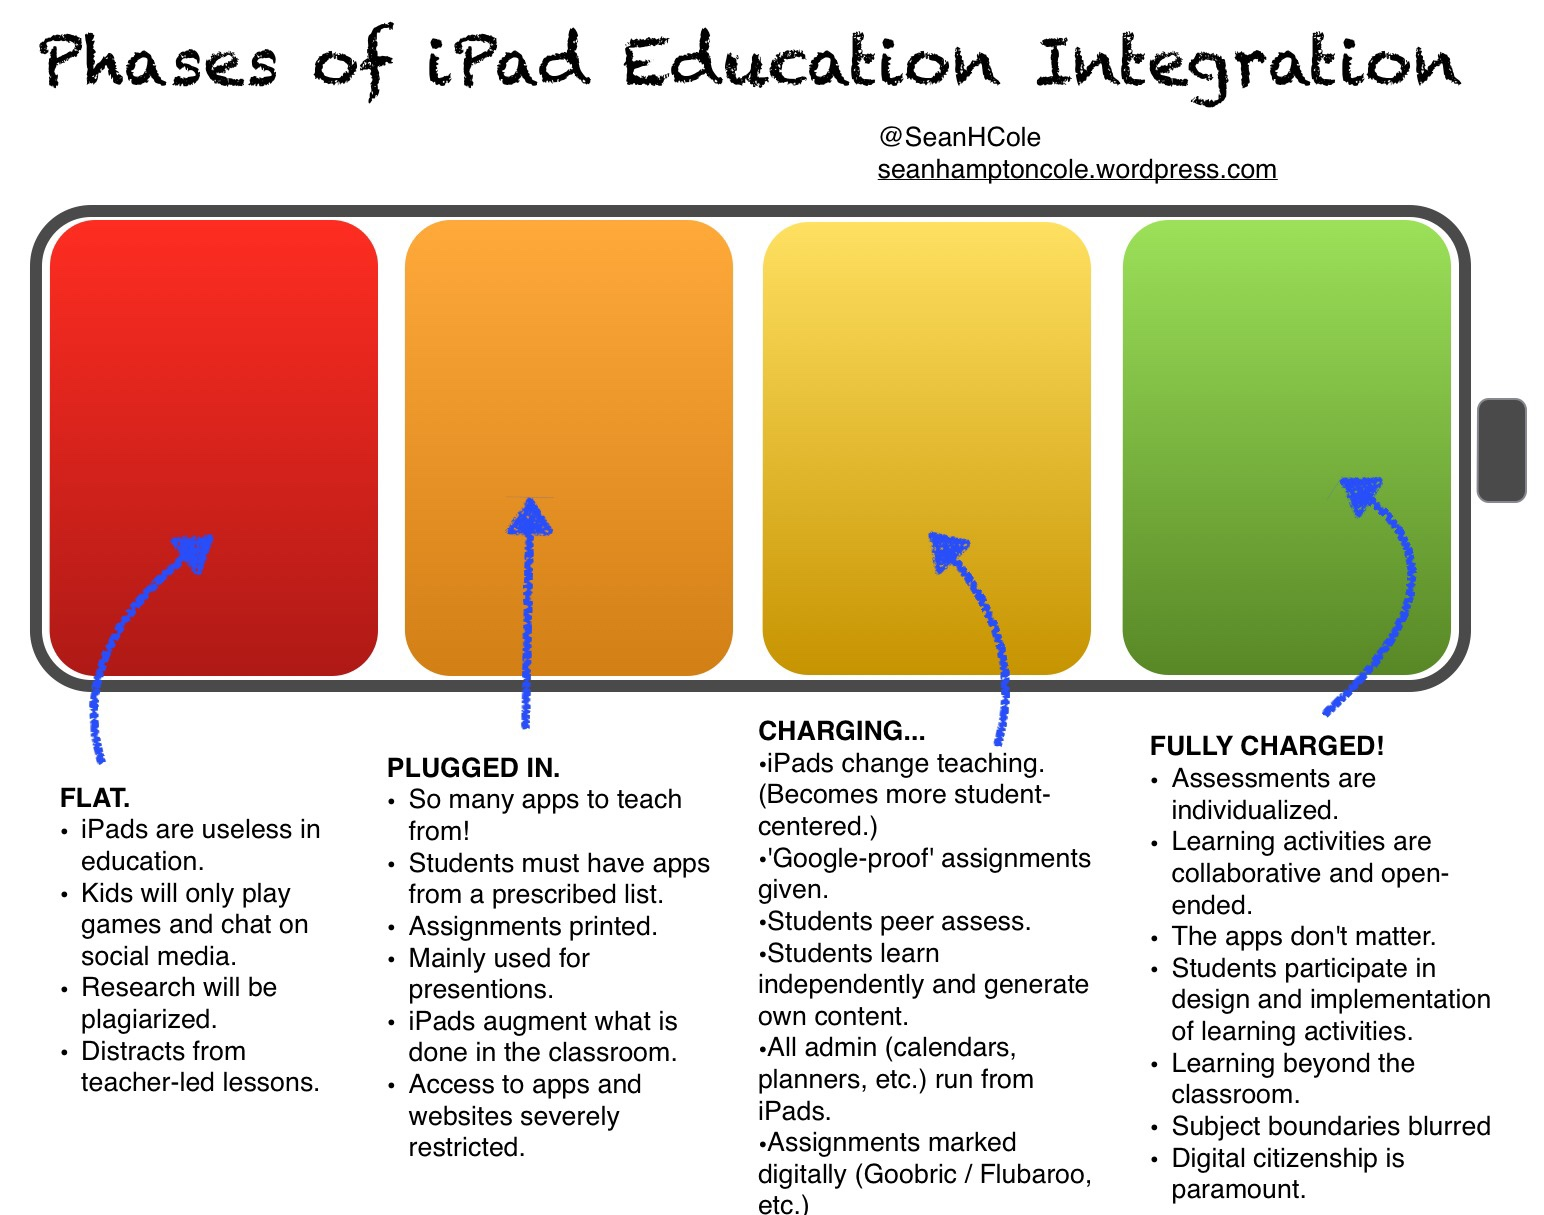 the integration of computers in education essay Integrating technology in education  in the technological society of today, is it possible that the integration of computers will change the traditional methods of the classroom  more about integrating technology in education essay on education and education technology essay 1496 words   6 pages.